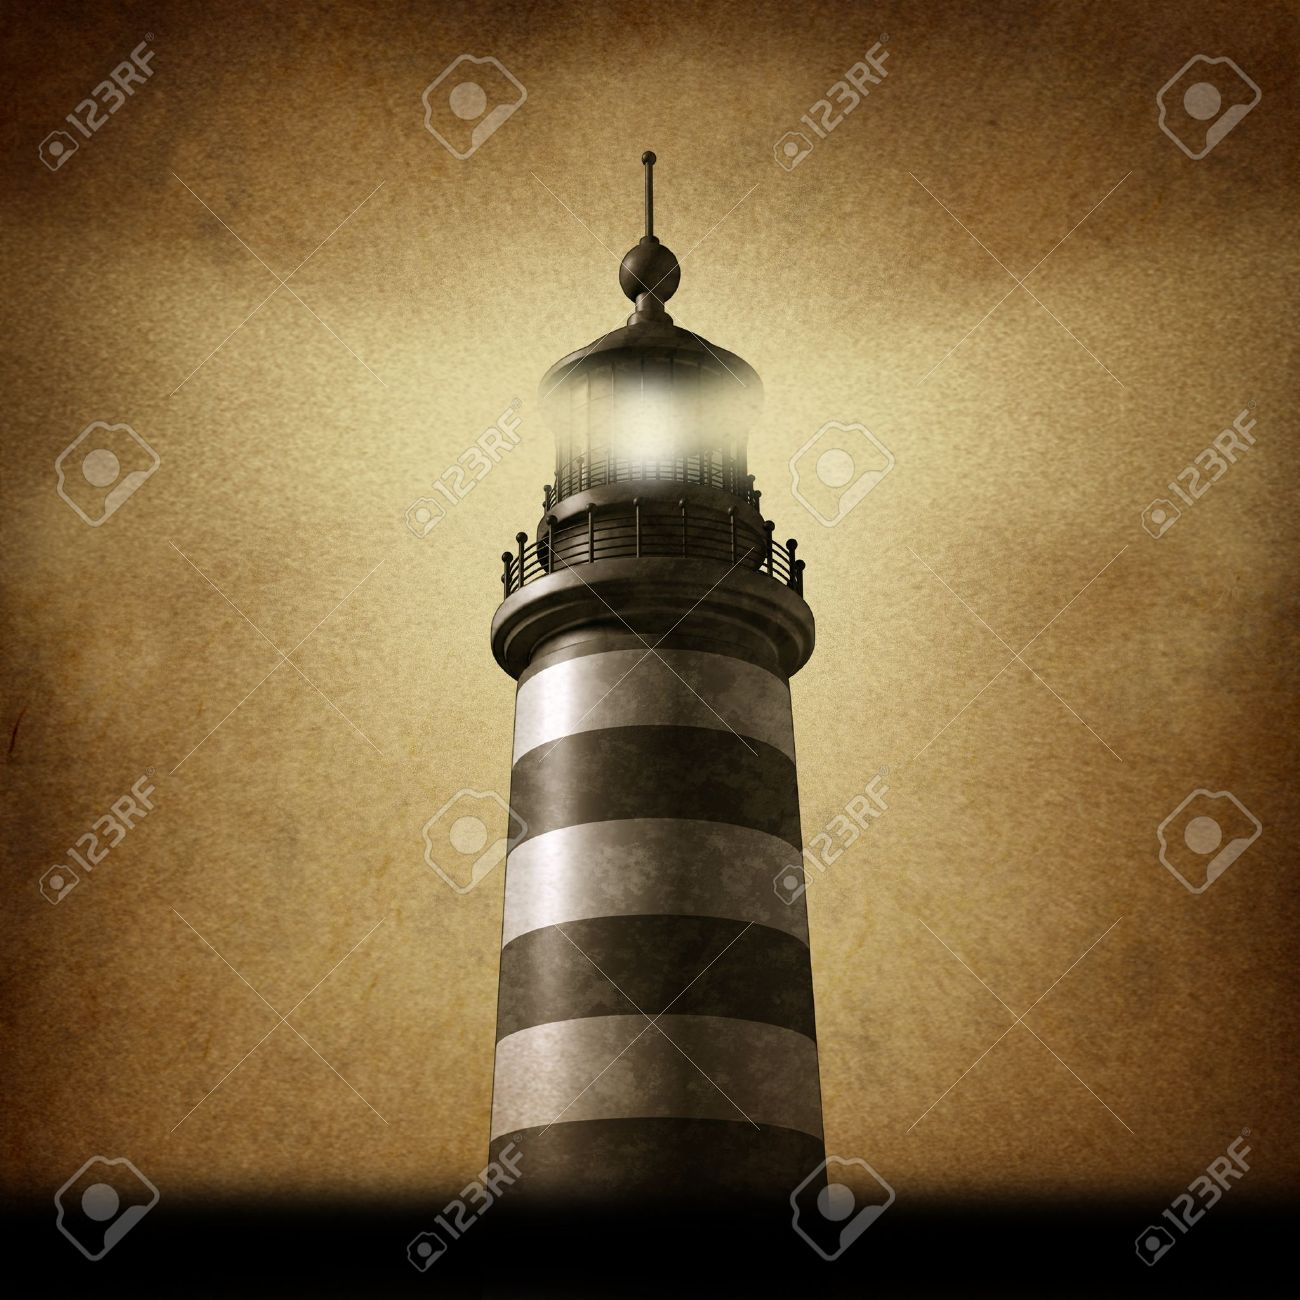 Lighthouse on an old grunge parchment texture clearing the path as a strategic guidance symbol with a beaming directional light as a business concept for the way forward with a high tower for a financial venture Stock Photo - 17472615